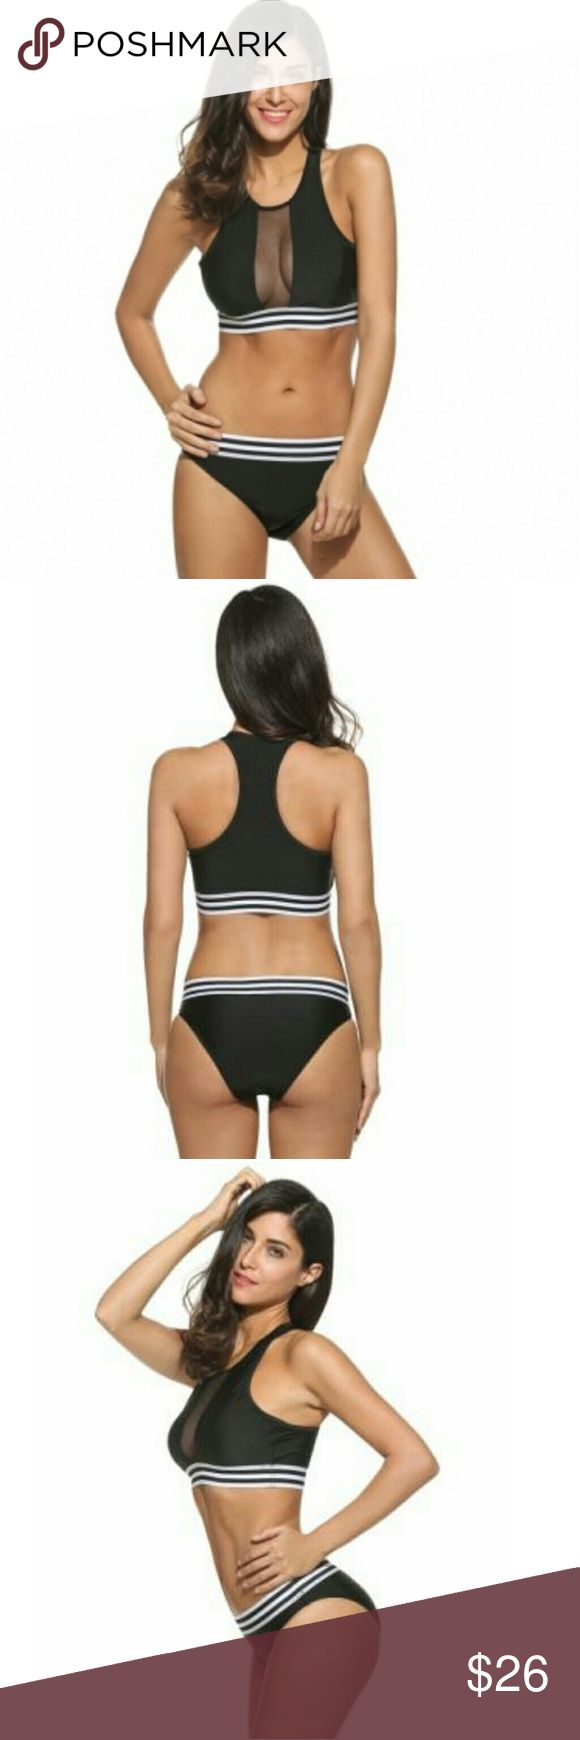 Cute bikini Super cute black bikini with stripped elastic waist.   Material: Polyamide Garment Care: Wash max 40°C, Hang to dry, Iron with press cloth  Measurements in inches   Size.        Upper Bust.       Under Bust.         Hip XS.               26.9                   24.2                 26.9  Sm               28.1                   25.7                28.1  M.                 30                     27.3                30 inch Swim Bikinis